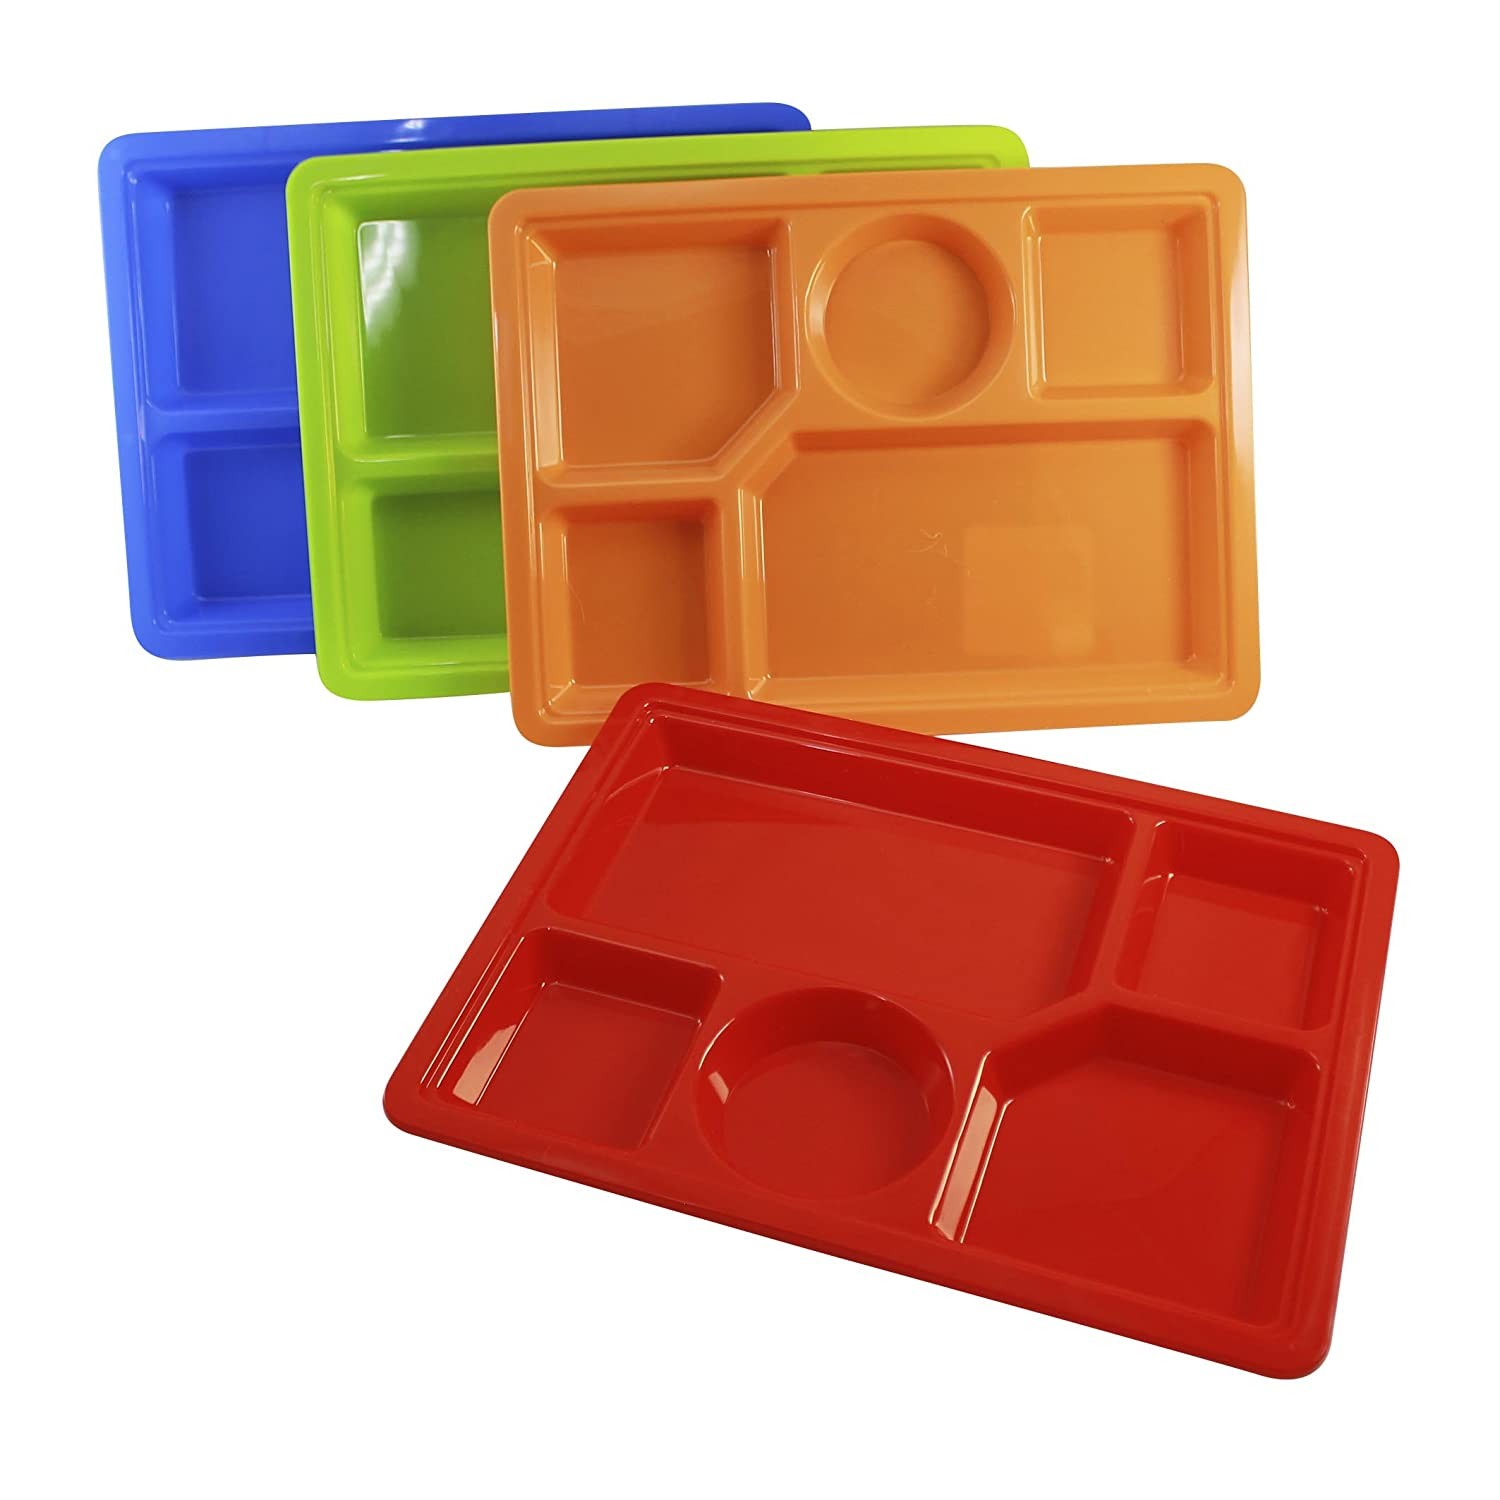 Red Childrens Cafeteria Style Plastic Section Lunch Tray with Matching Plastic Fork and Spoon Set BPA Free Dishwasher Safe Kids Plate Dishes